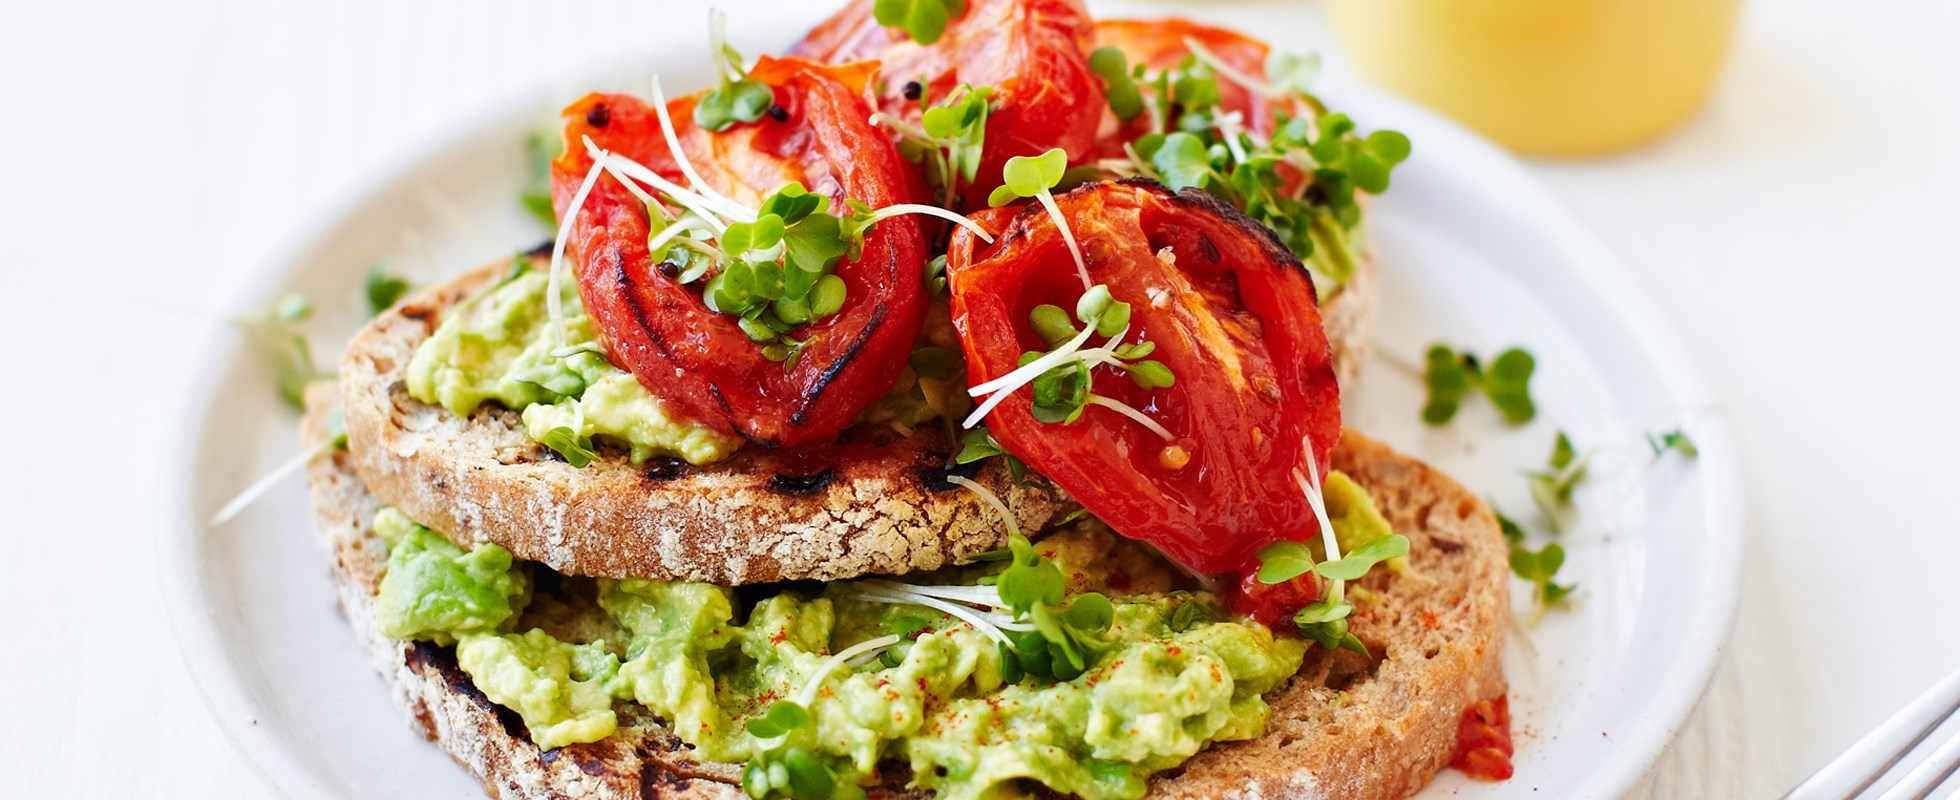 Avocado Toast Recipe with Roasted Tomatoes